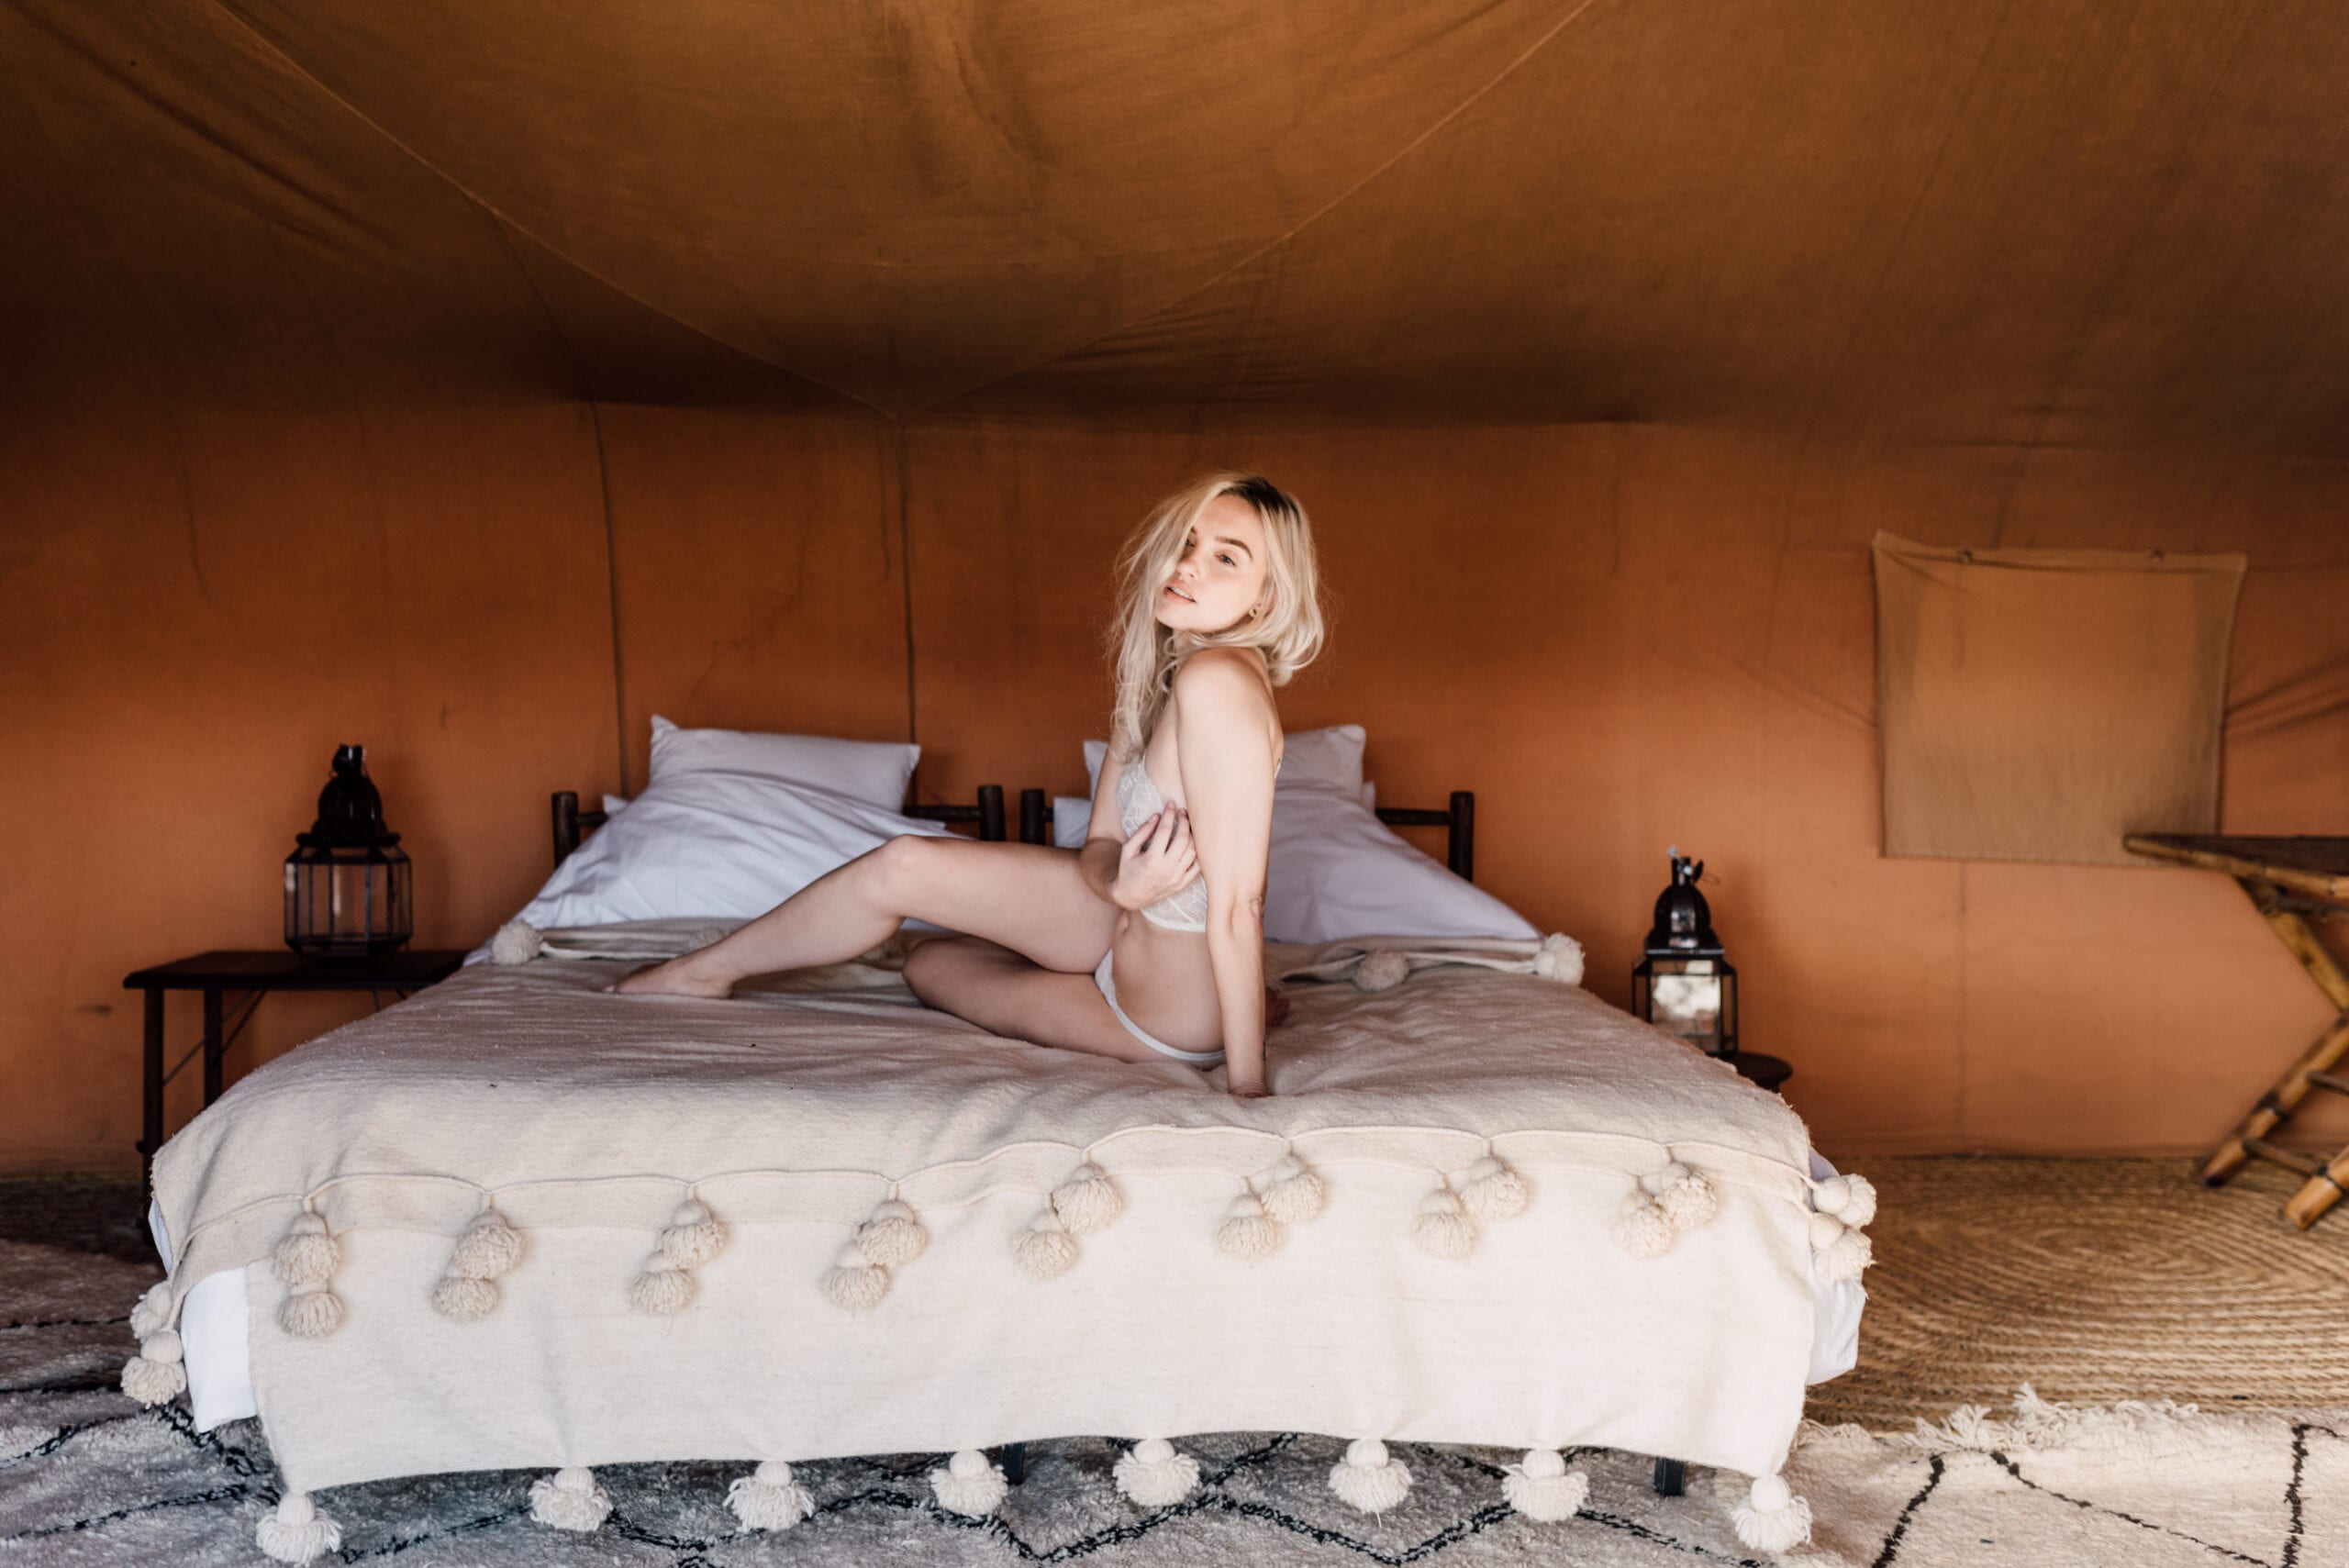 editorial campaign shoot marrakech fashion bridal fotoshoot lingerie desert agafay morocco